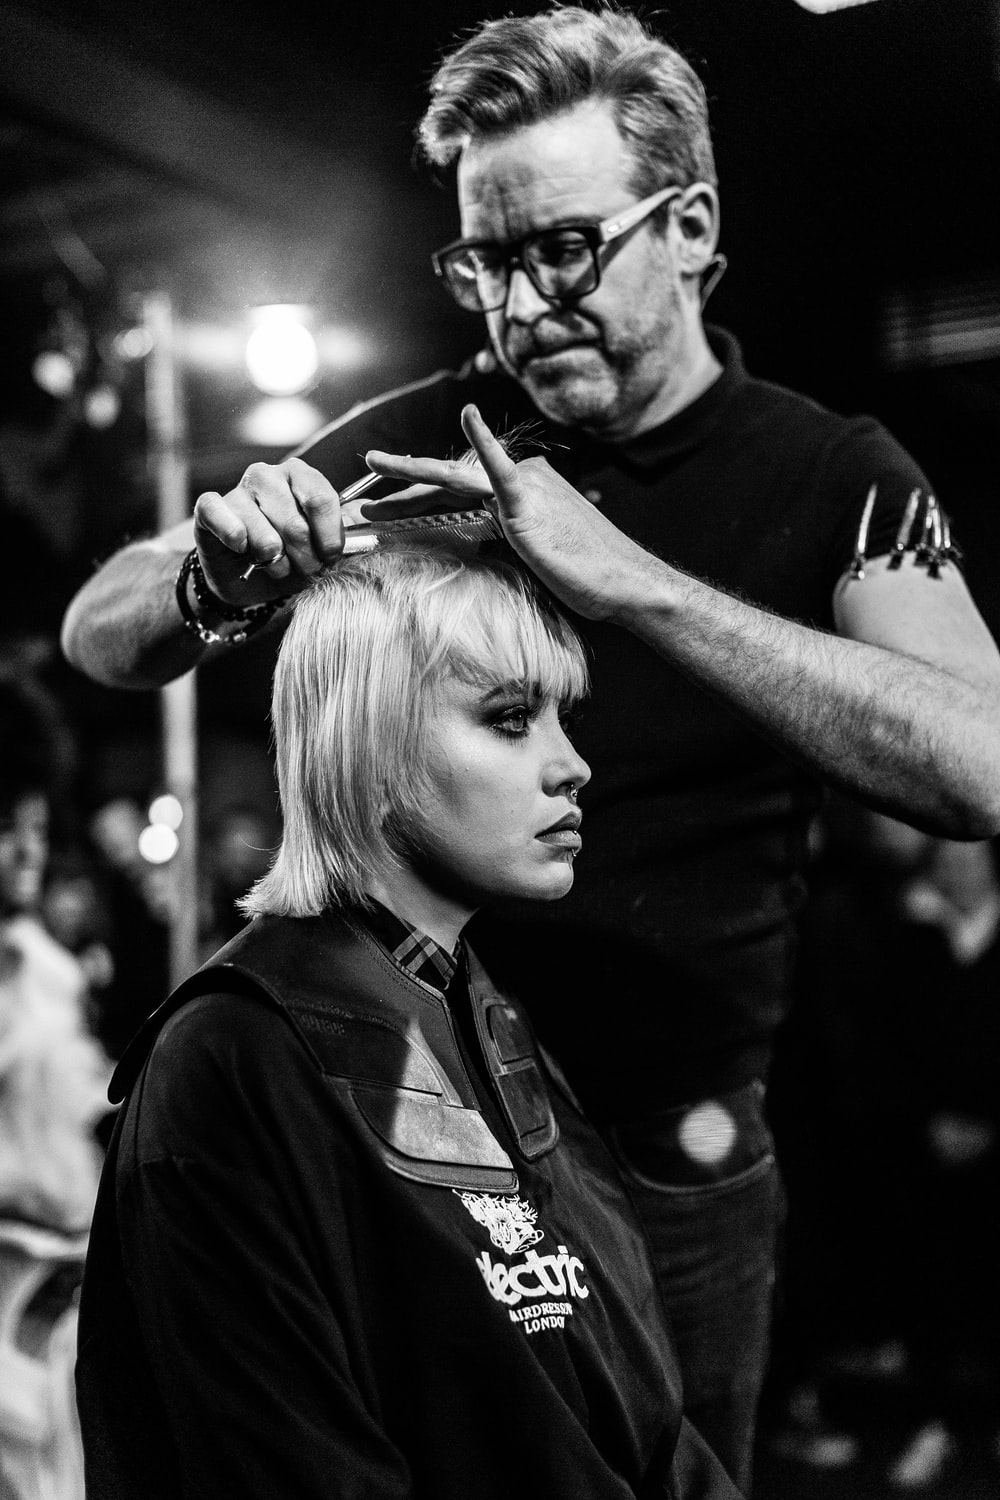 Sway Bar, London, United Kingdom. Hairdresser at work